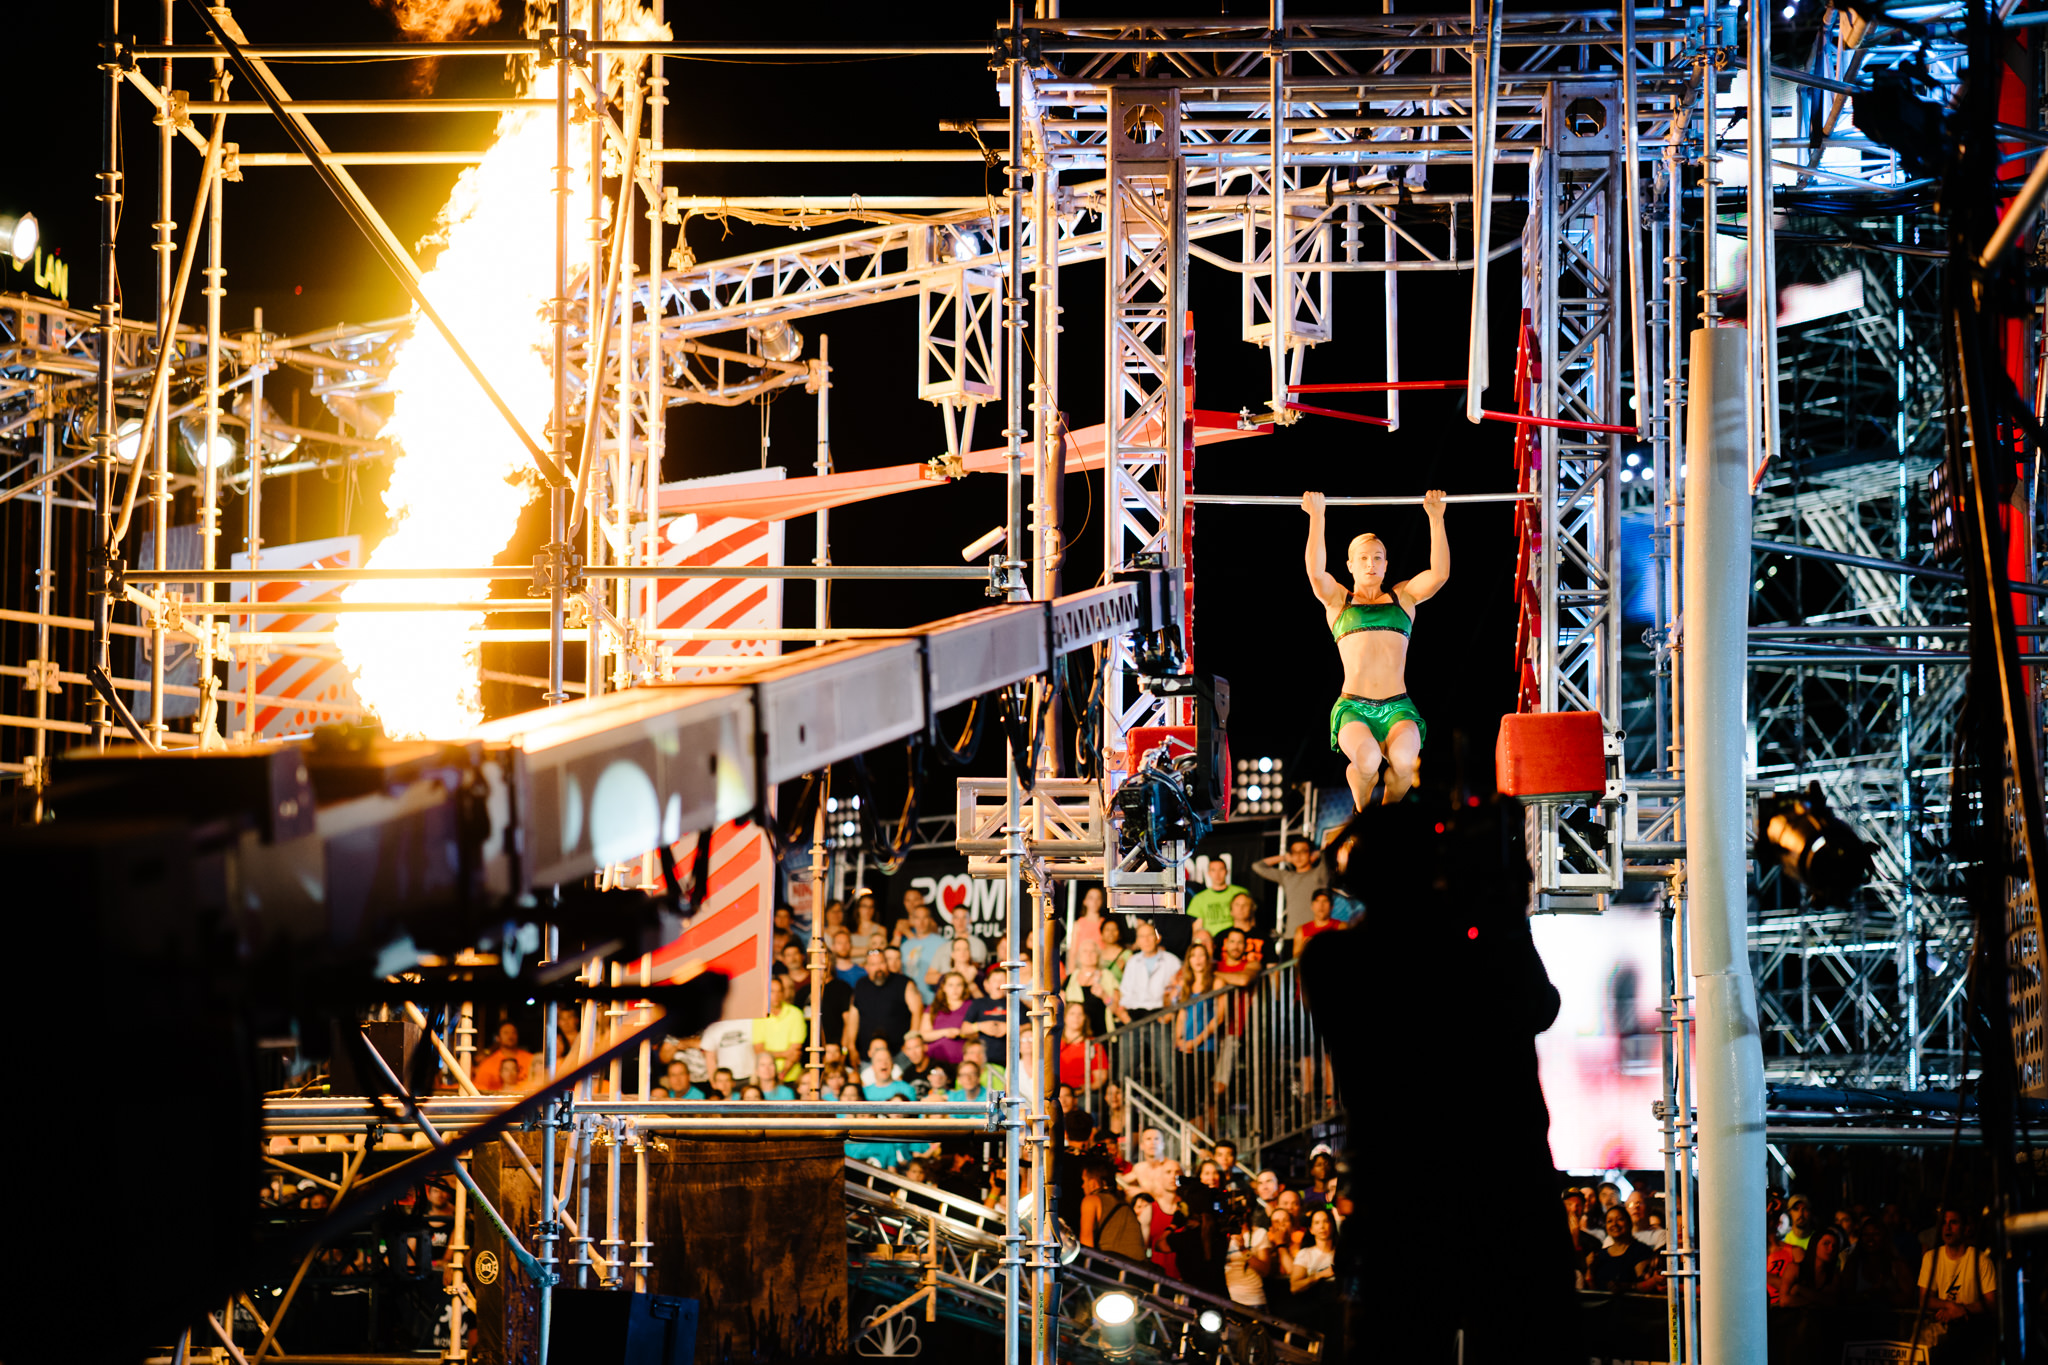 NBC's  American Ninja Warrior   | Season 8  The direction for Season 8 was to document an up close account of the production & behind the scenes aspects of the show, including athlete interviews, pre-run portraits, warm-ups, & in action on the course.